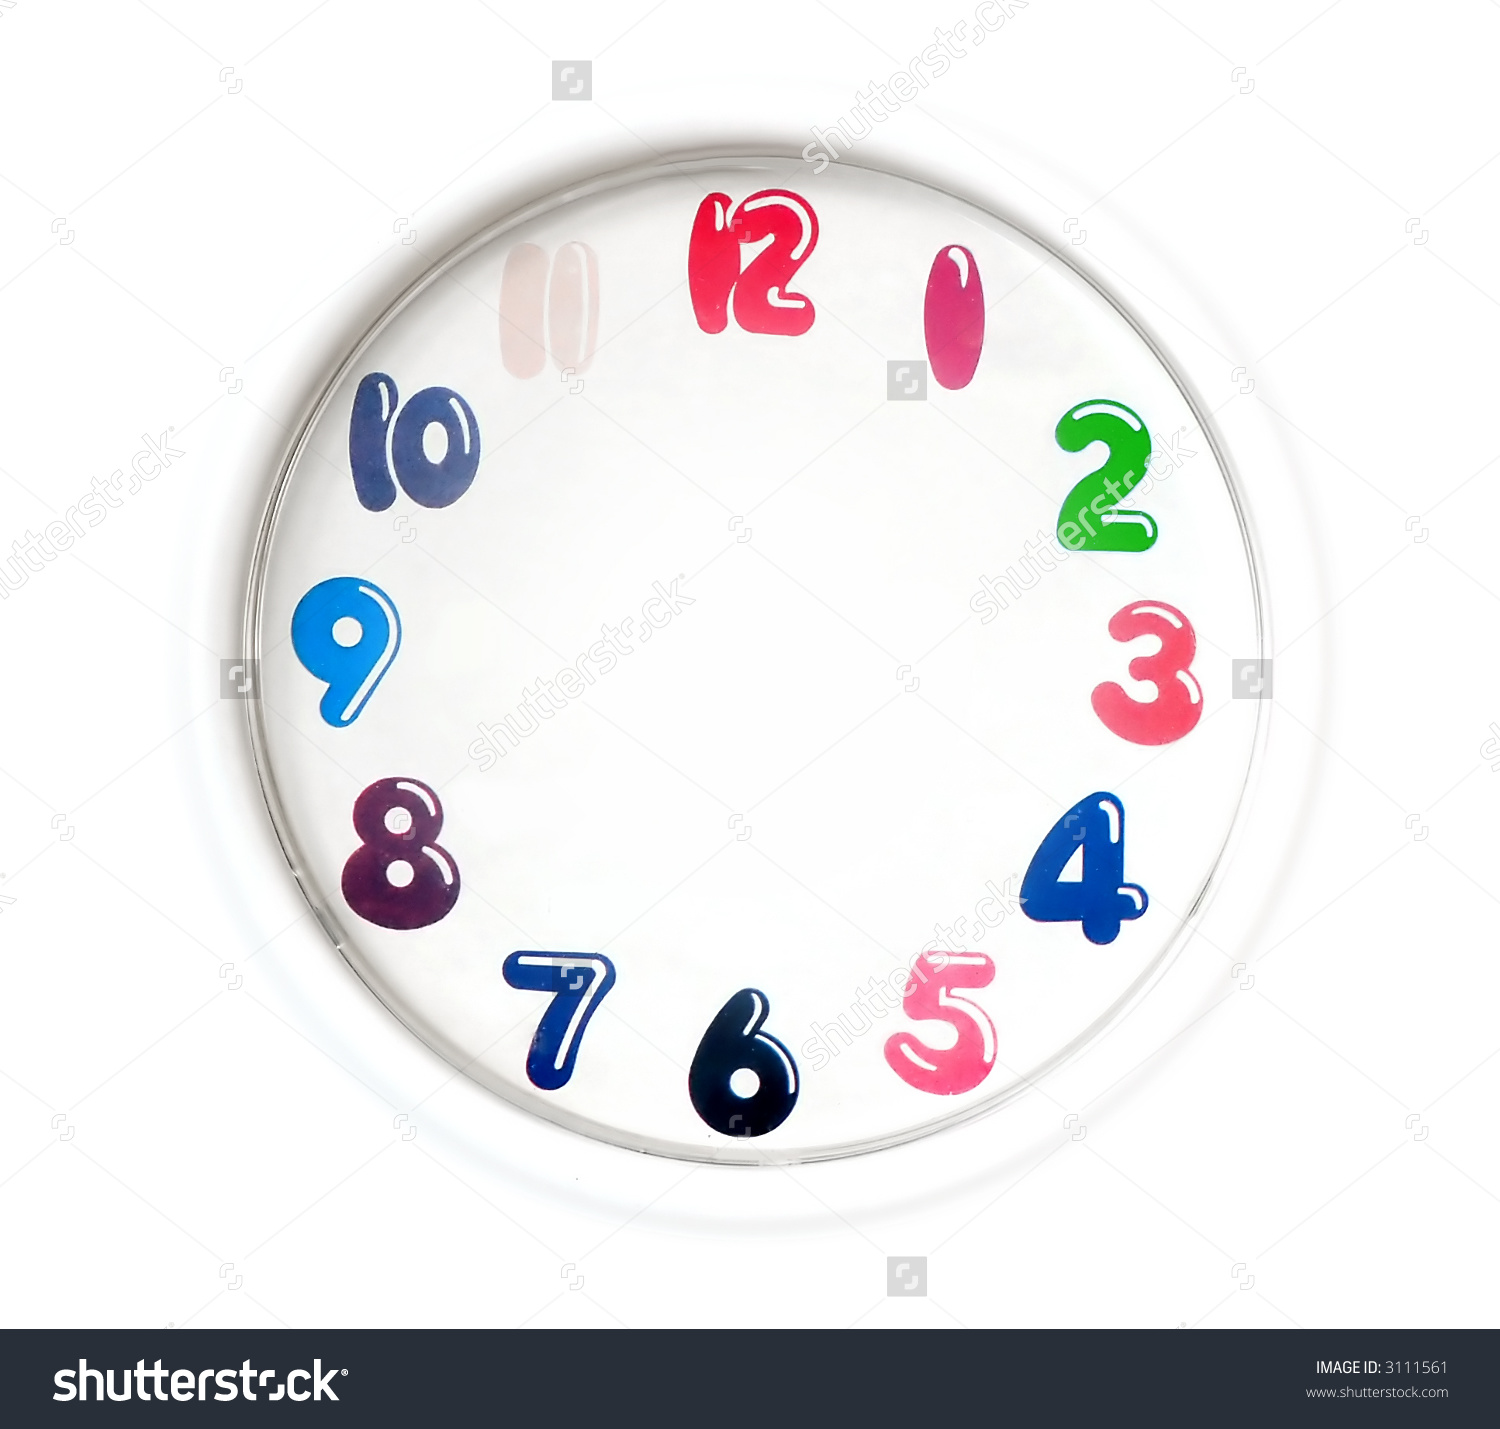 Analog Clock Clipart With No Hands.